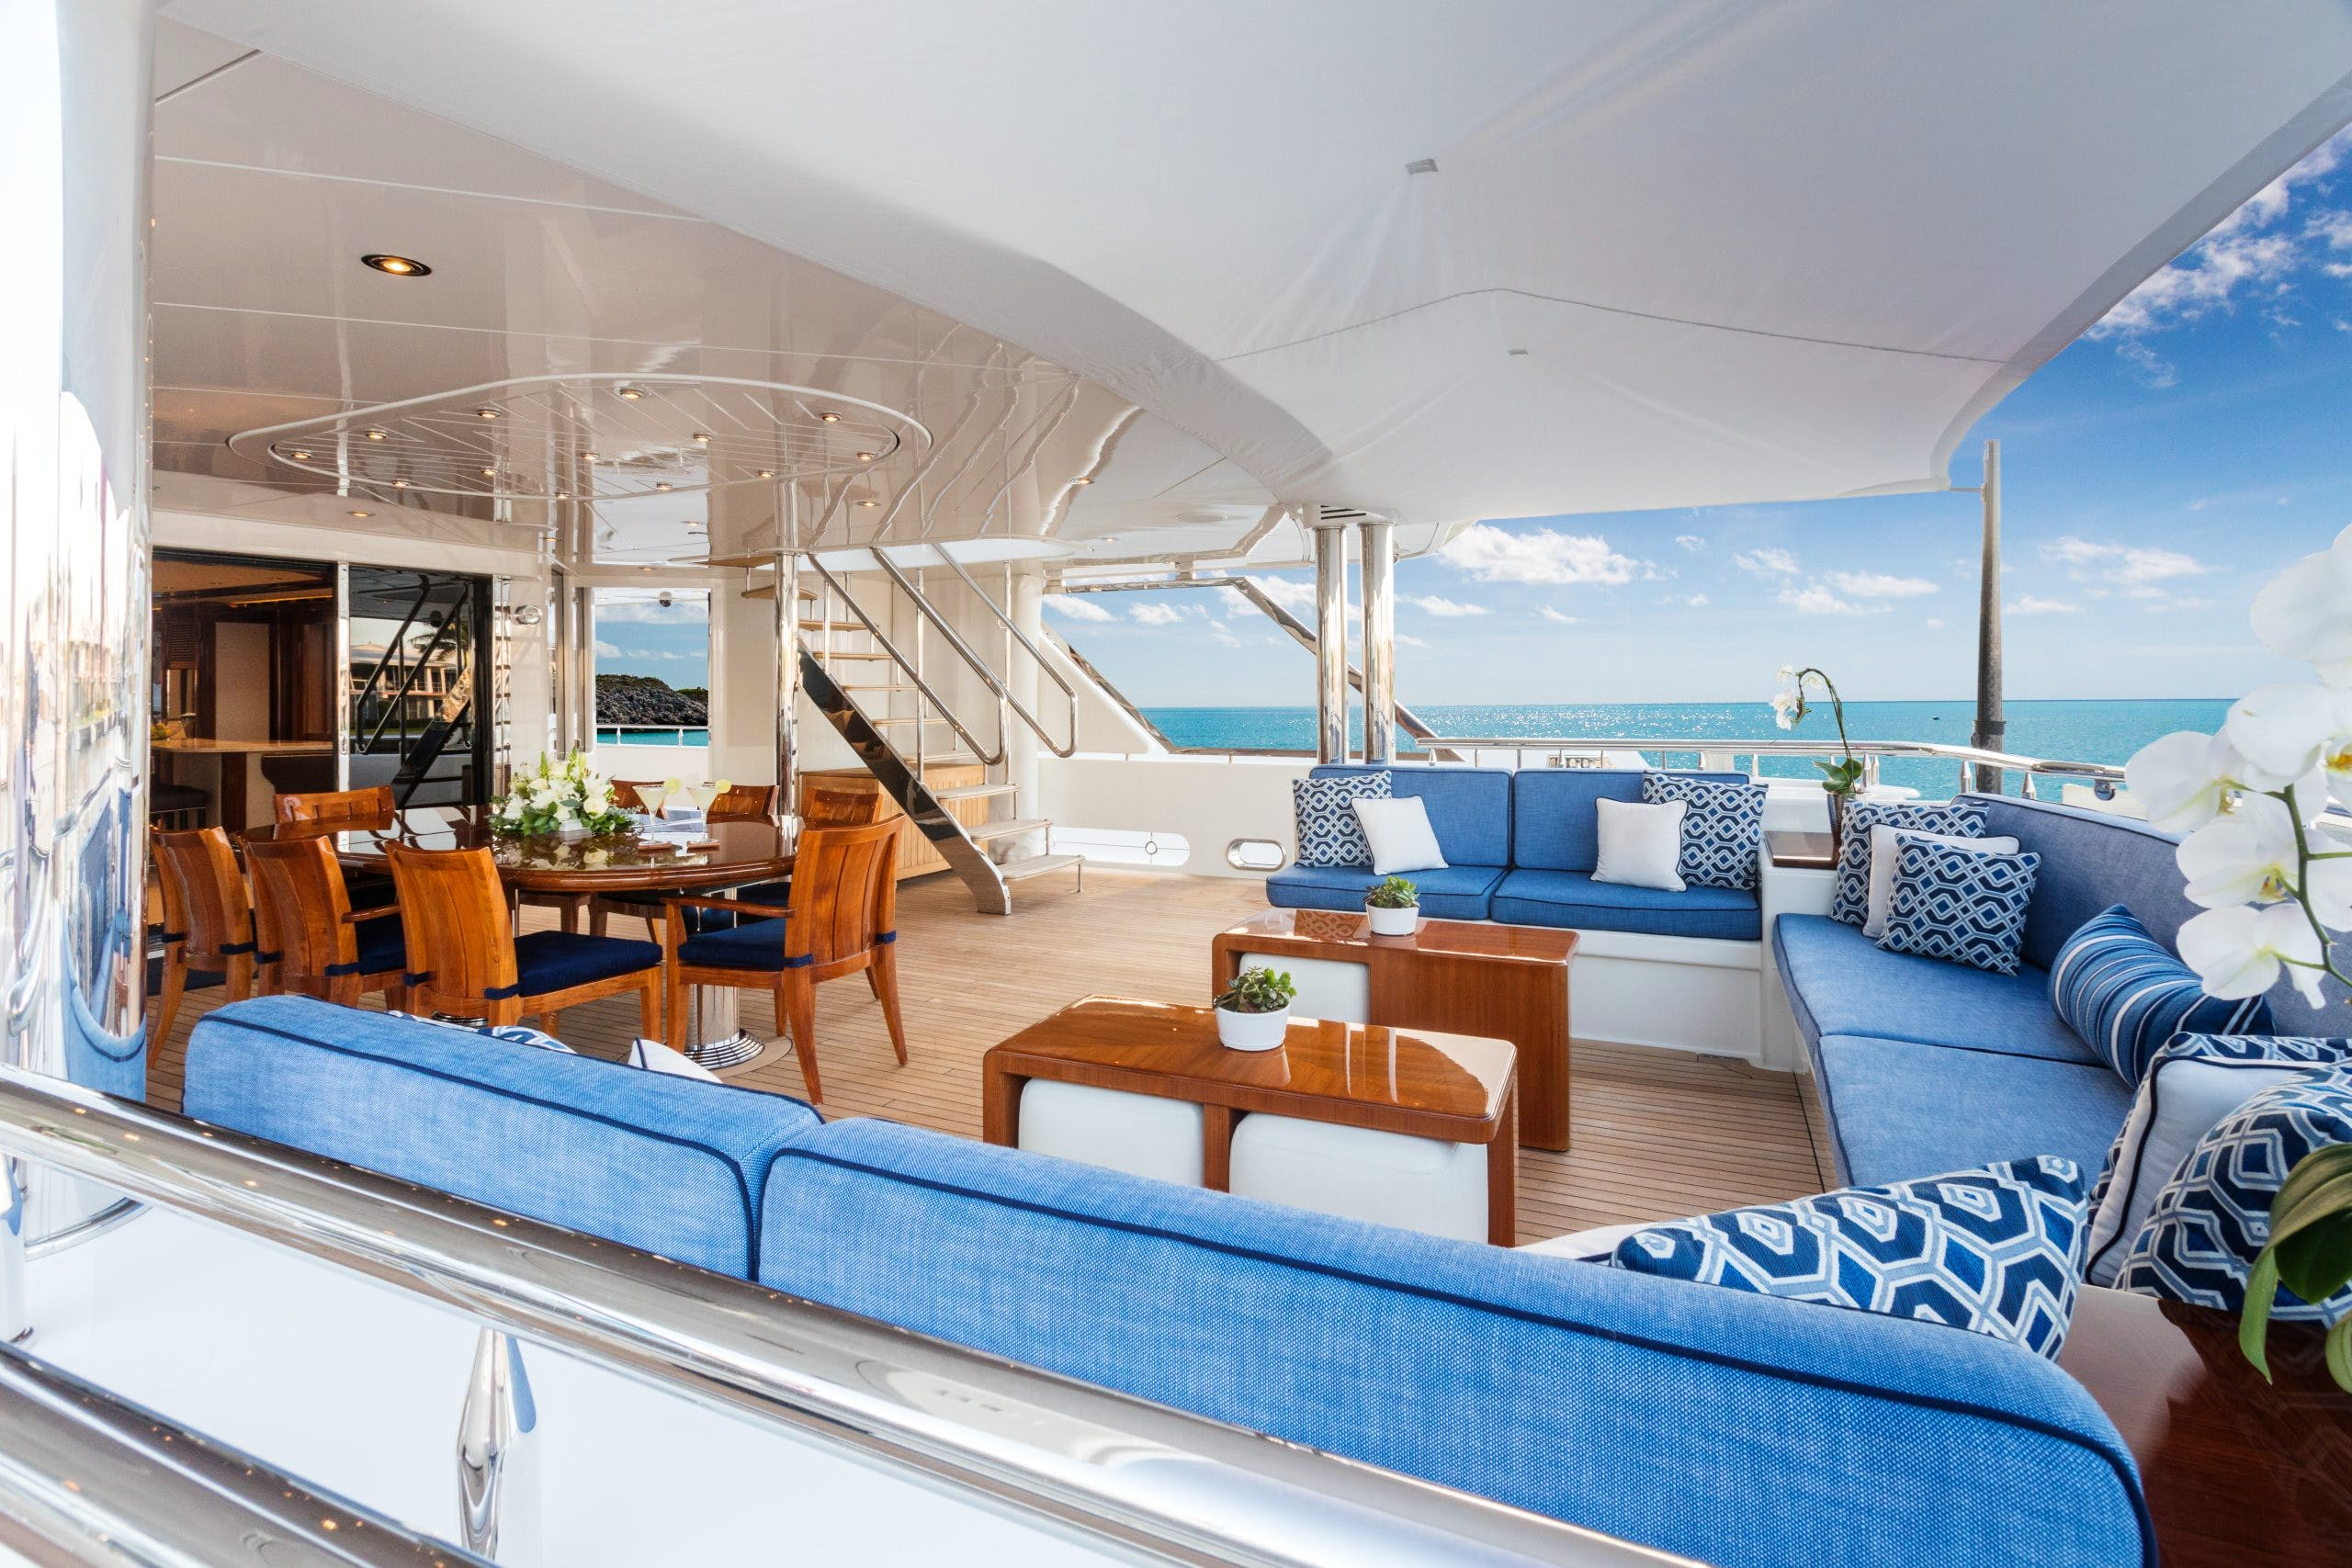 Seasonal Rates for CHASING DAYLIGHT Private Luxury Yacht For Charter